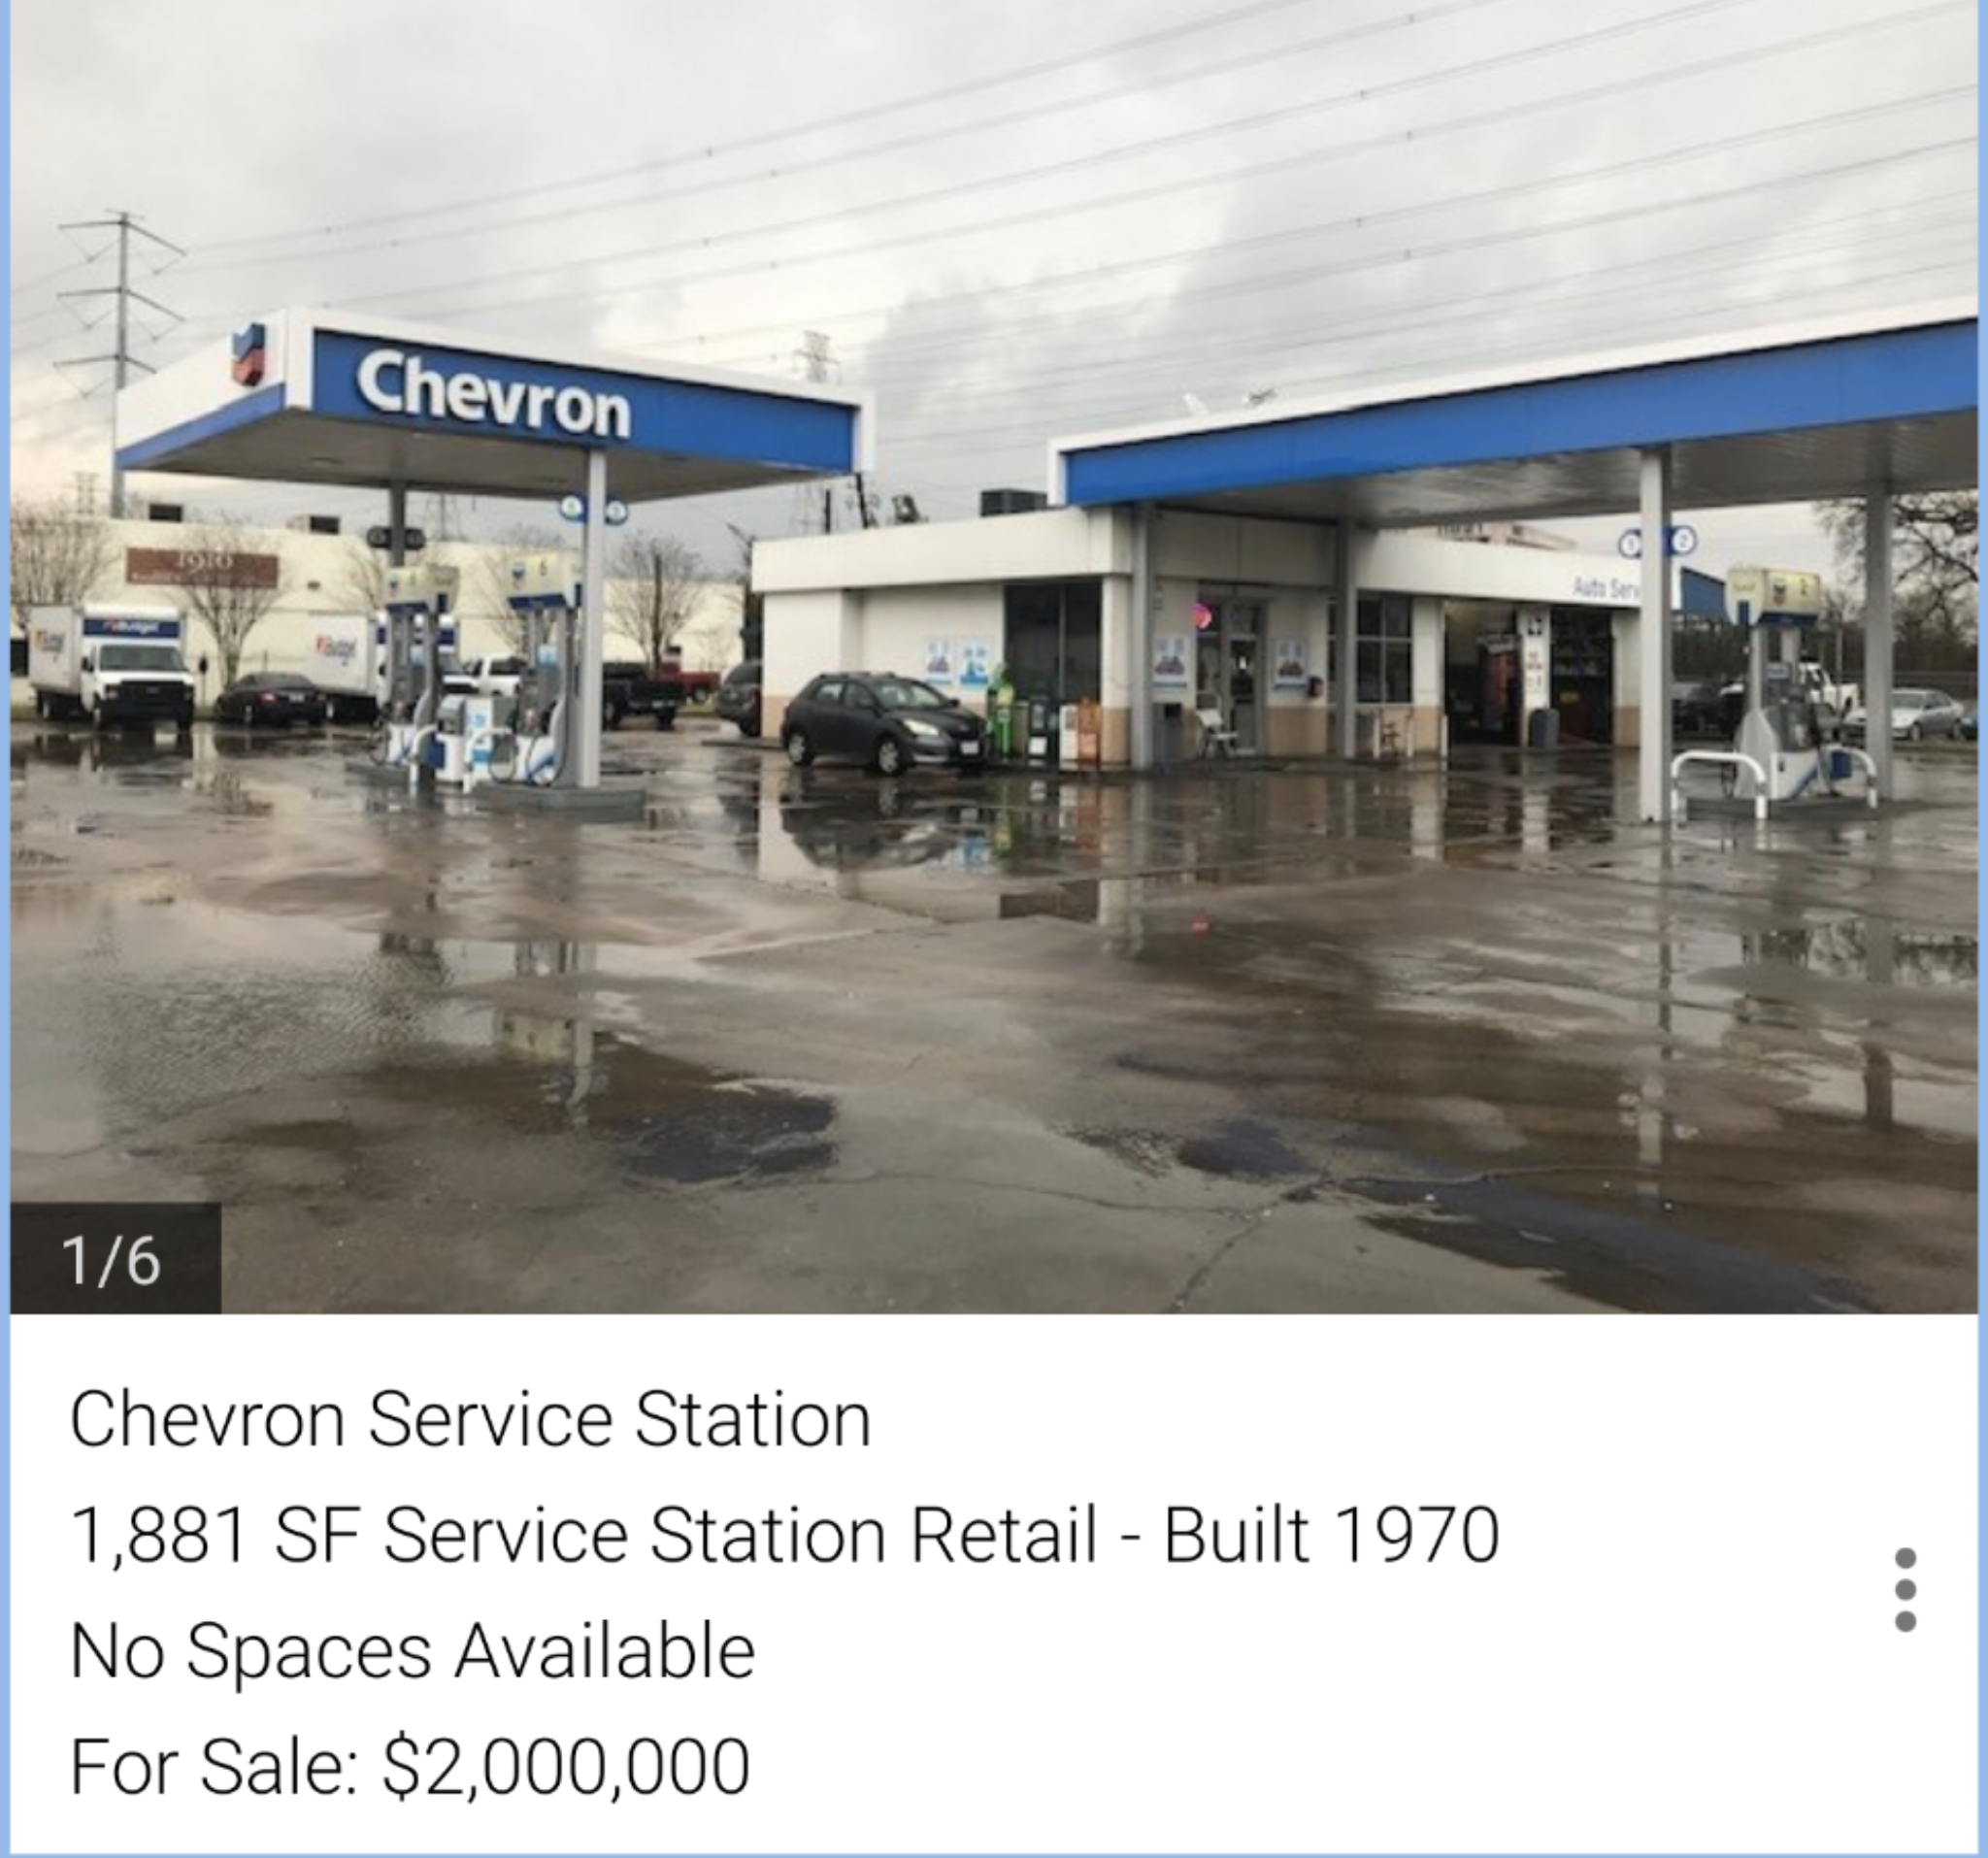 Houston Gas Station Chevron ForSale $2M